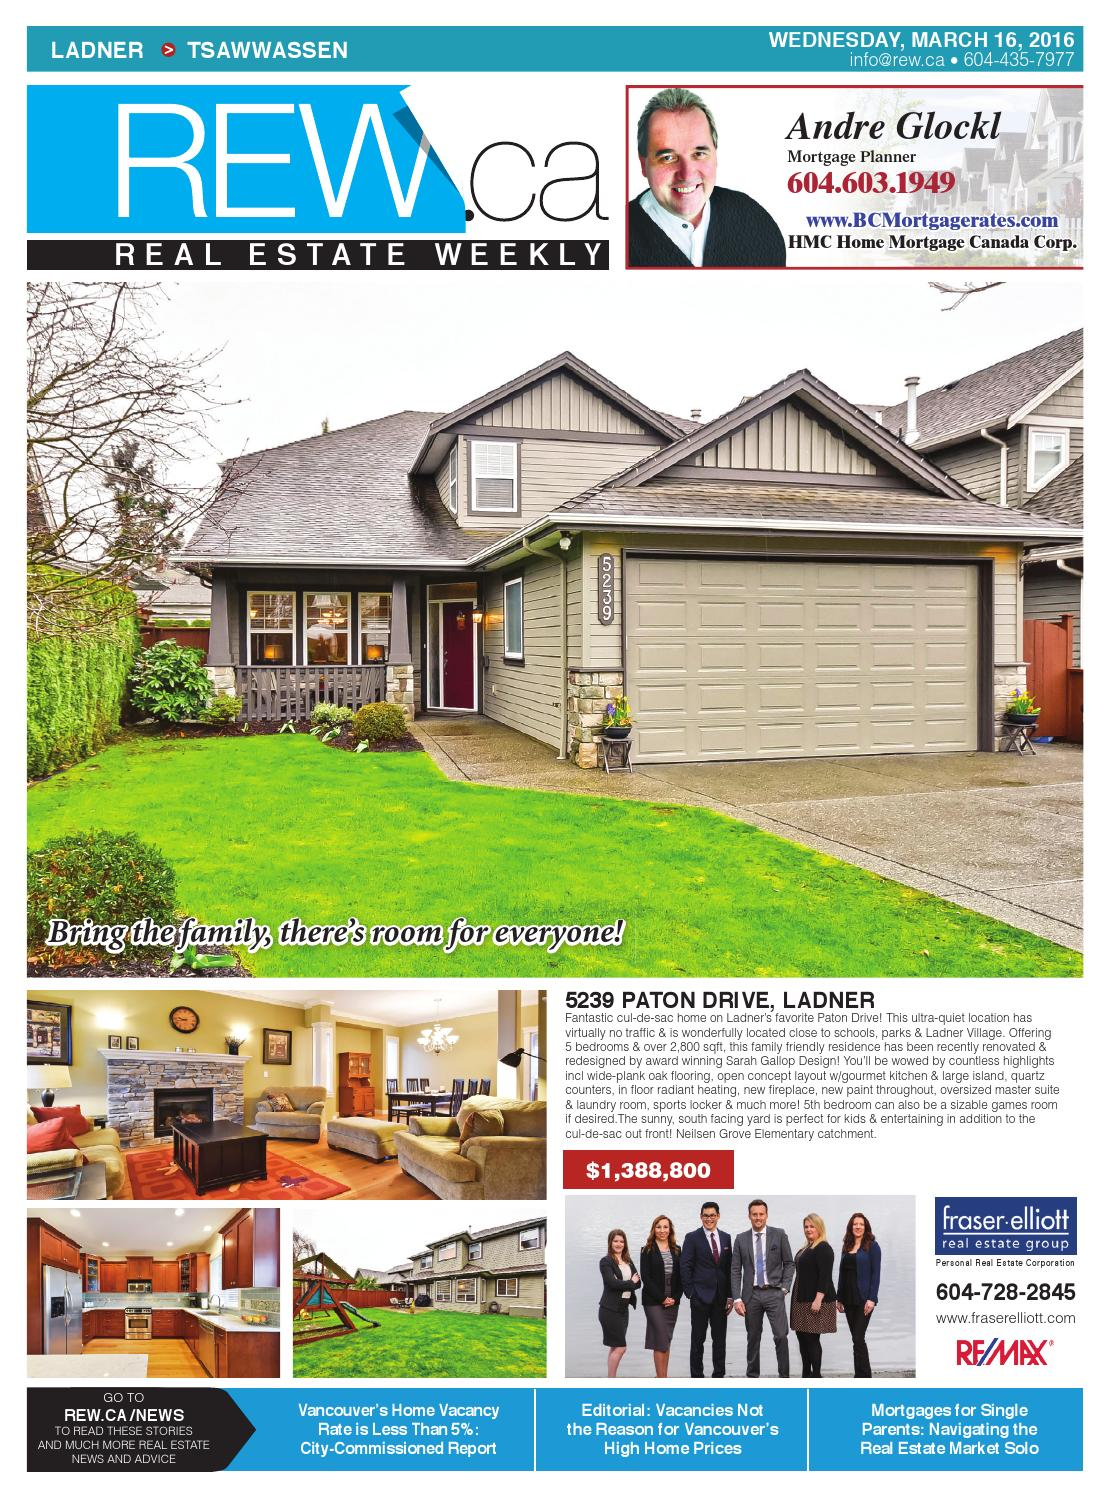 realtor and interior designer debbie evans realtor interior design consultant remax west LADNER - TSAWWASSEN Mar 16, 2016 Real Estate Weekly by Real Estate Weekly -  issuu